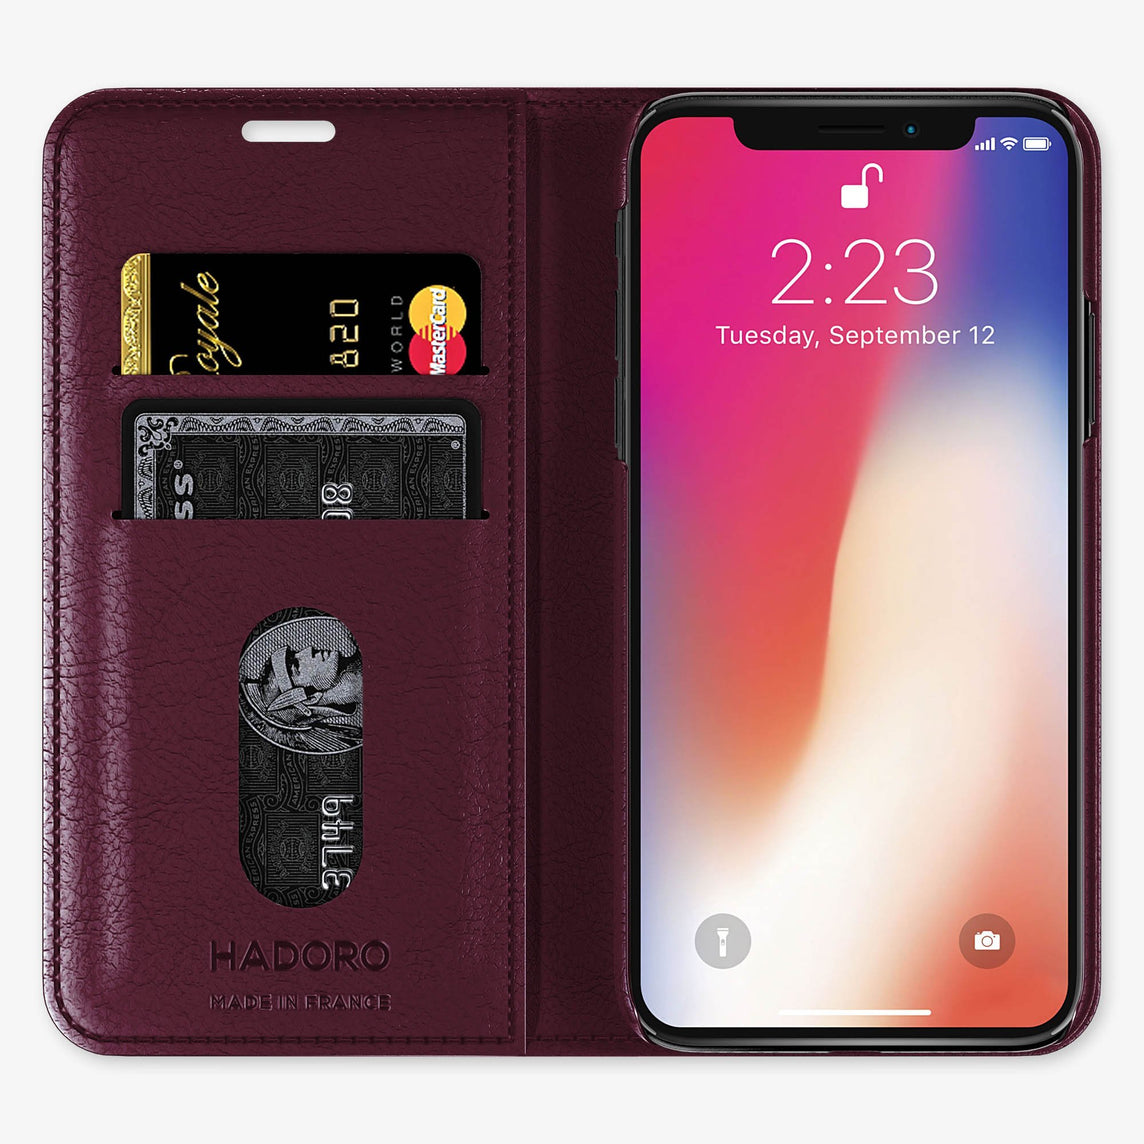 Burgundy Alligator iPhone Folio Case for iPhone X finishing black - Hadoro Luxury Cases